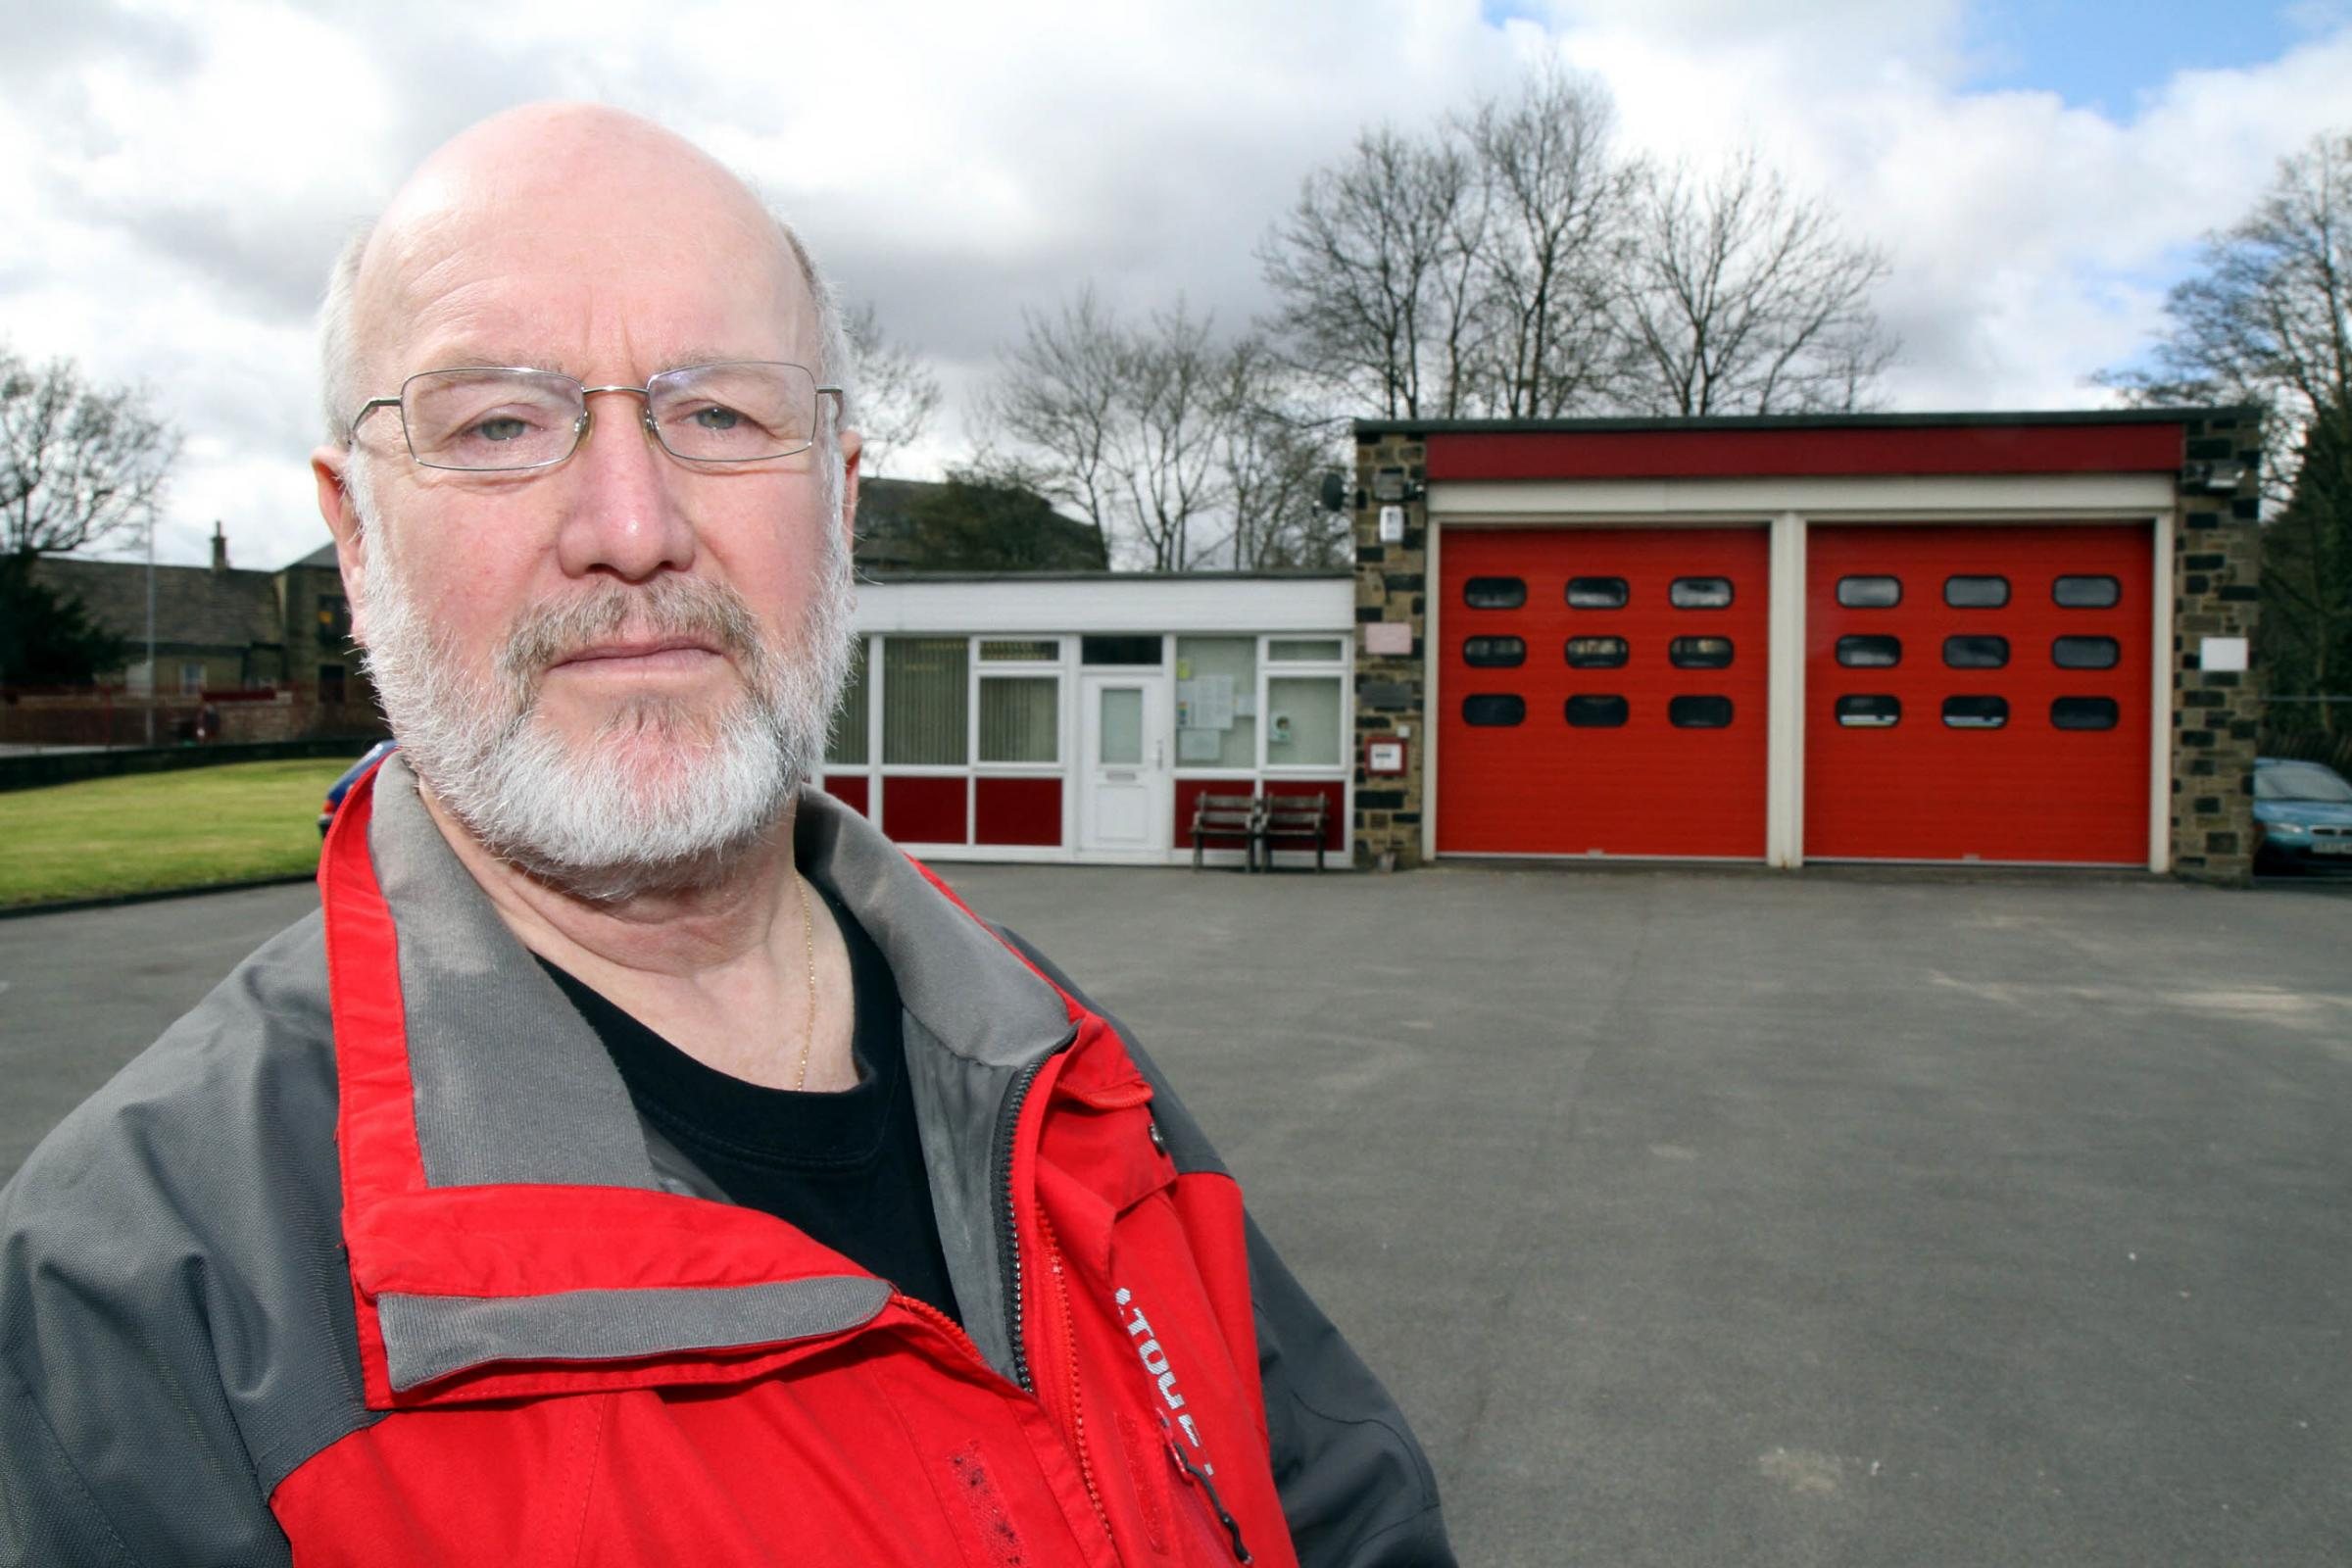 Councillor John Huxley, who is spearheading the campaign to maintain some level of service at Haworth Fire Station